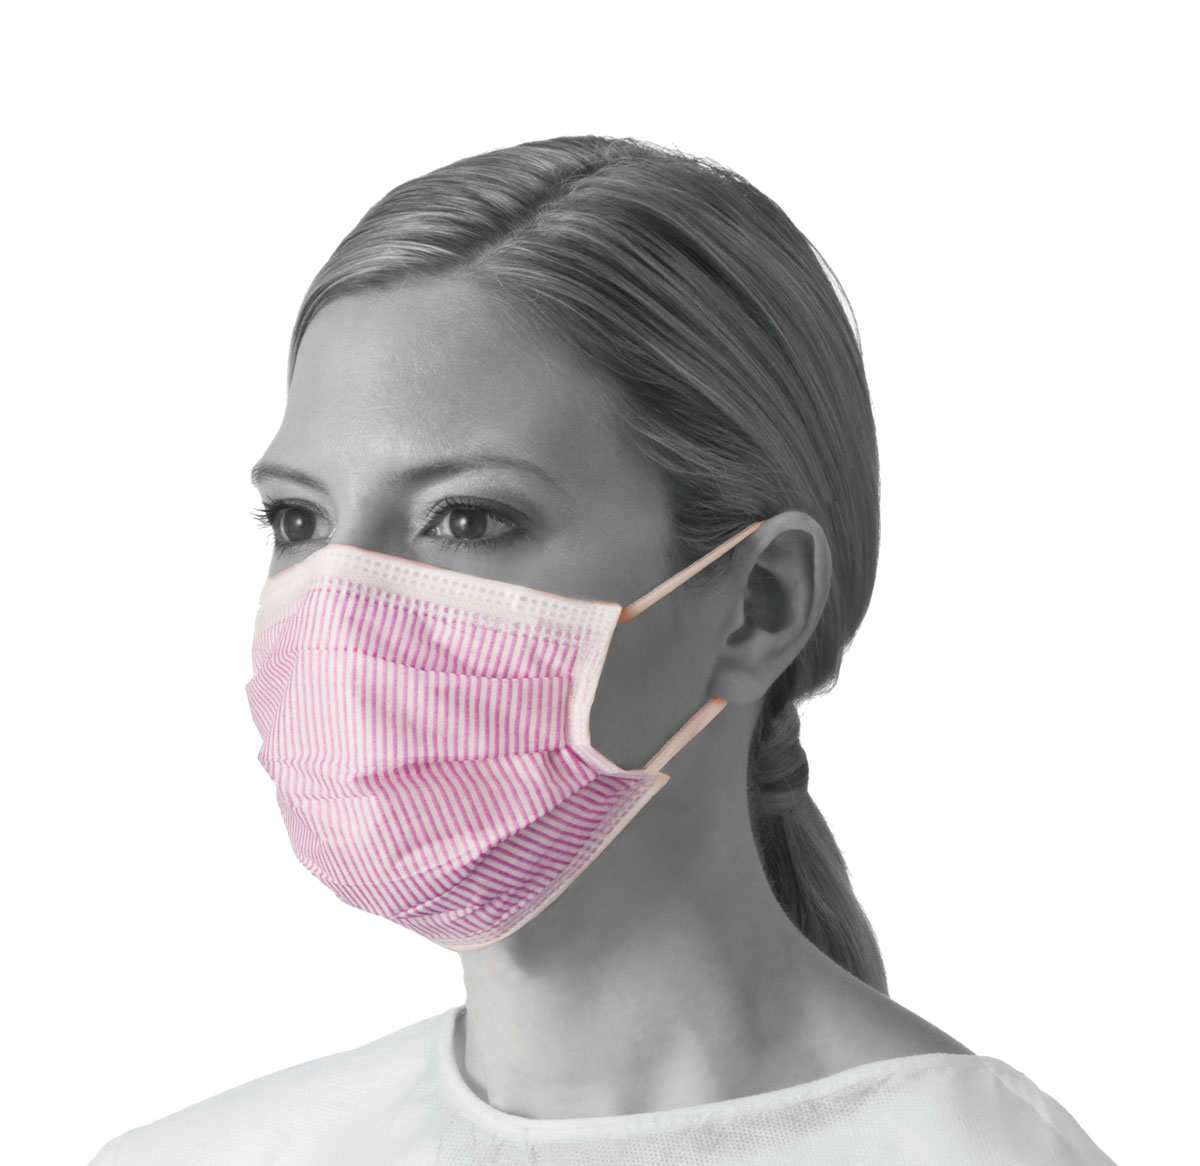 Masks Medline Procedure Fluid-resistant Inc Face Industries